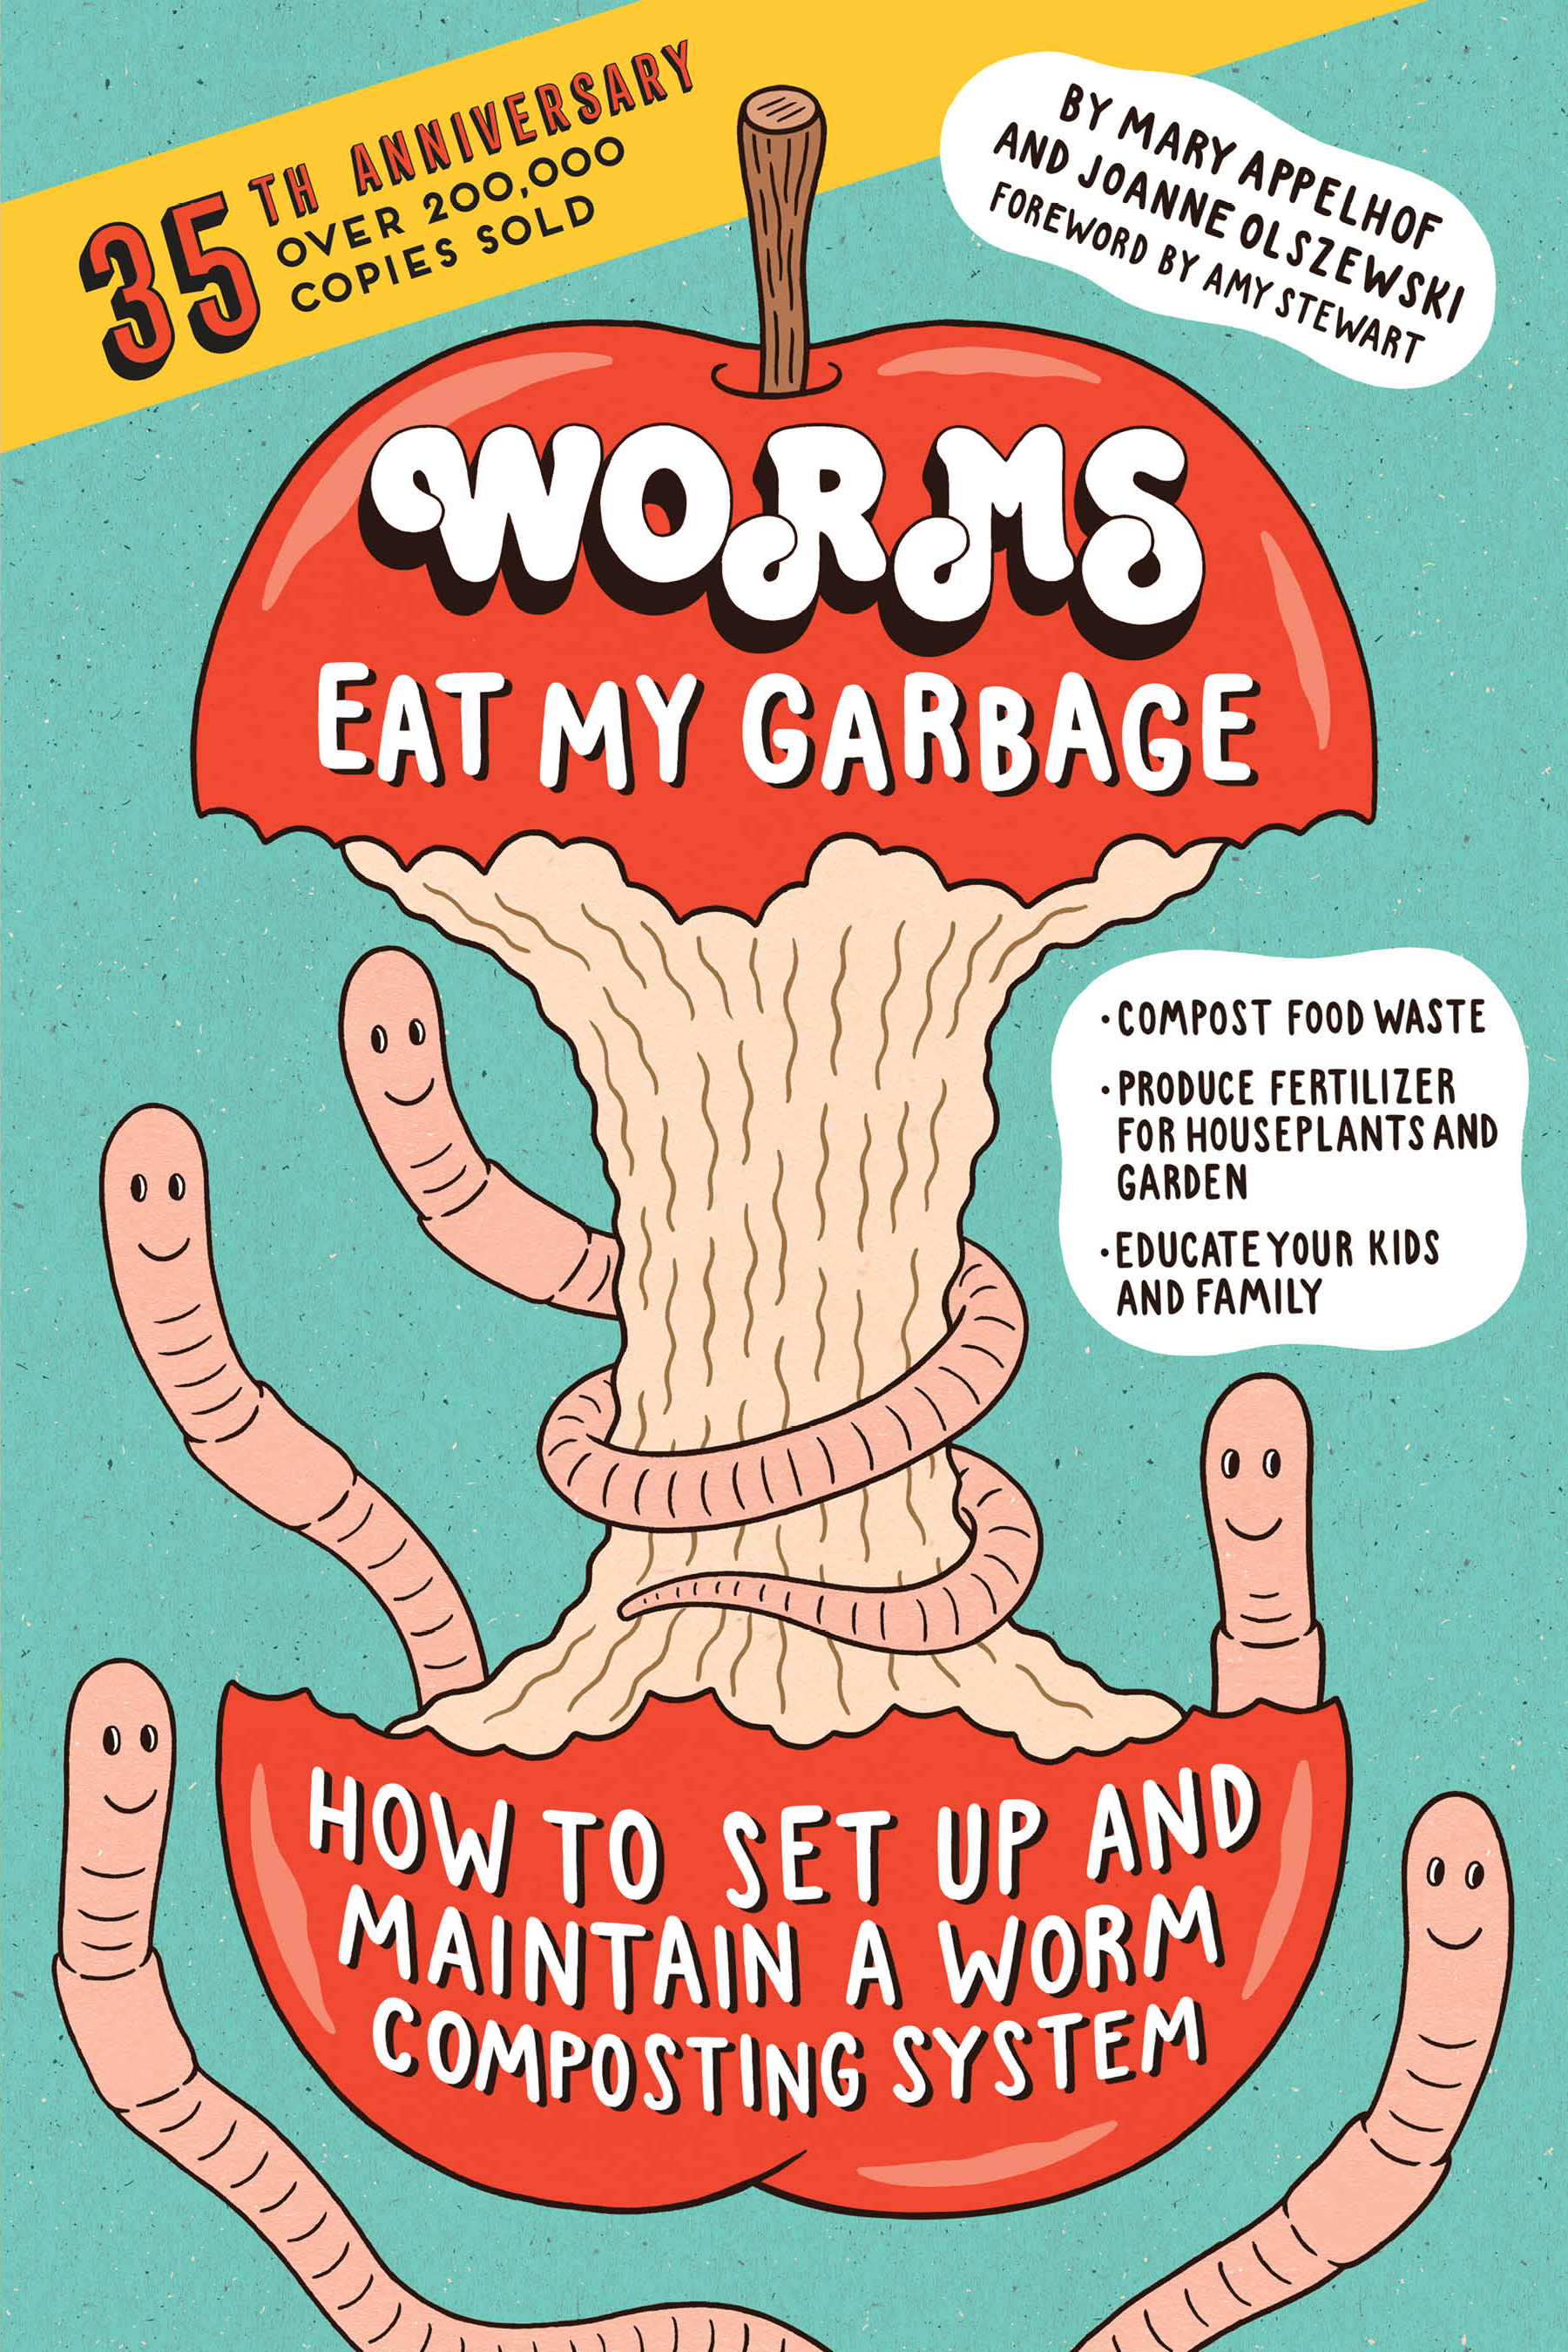 Worms Eat My Garbage, 35th Anniversary Edition How to Set Up and Maintain a Worm Composting System: Compost Food Waste, Produce Fertilizer for Houseplants and Garden, and Educate Your Kids and Family - Mary Appelhof